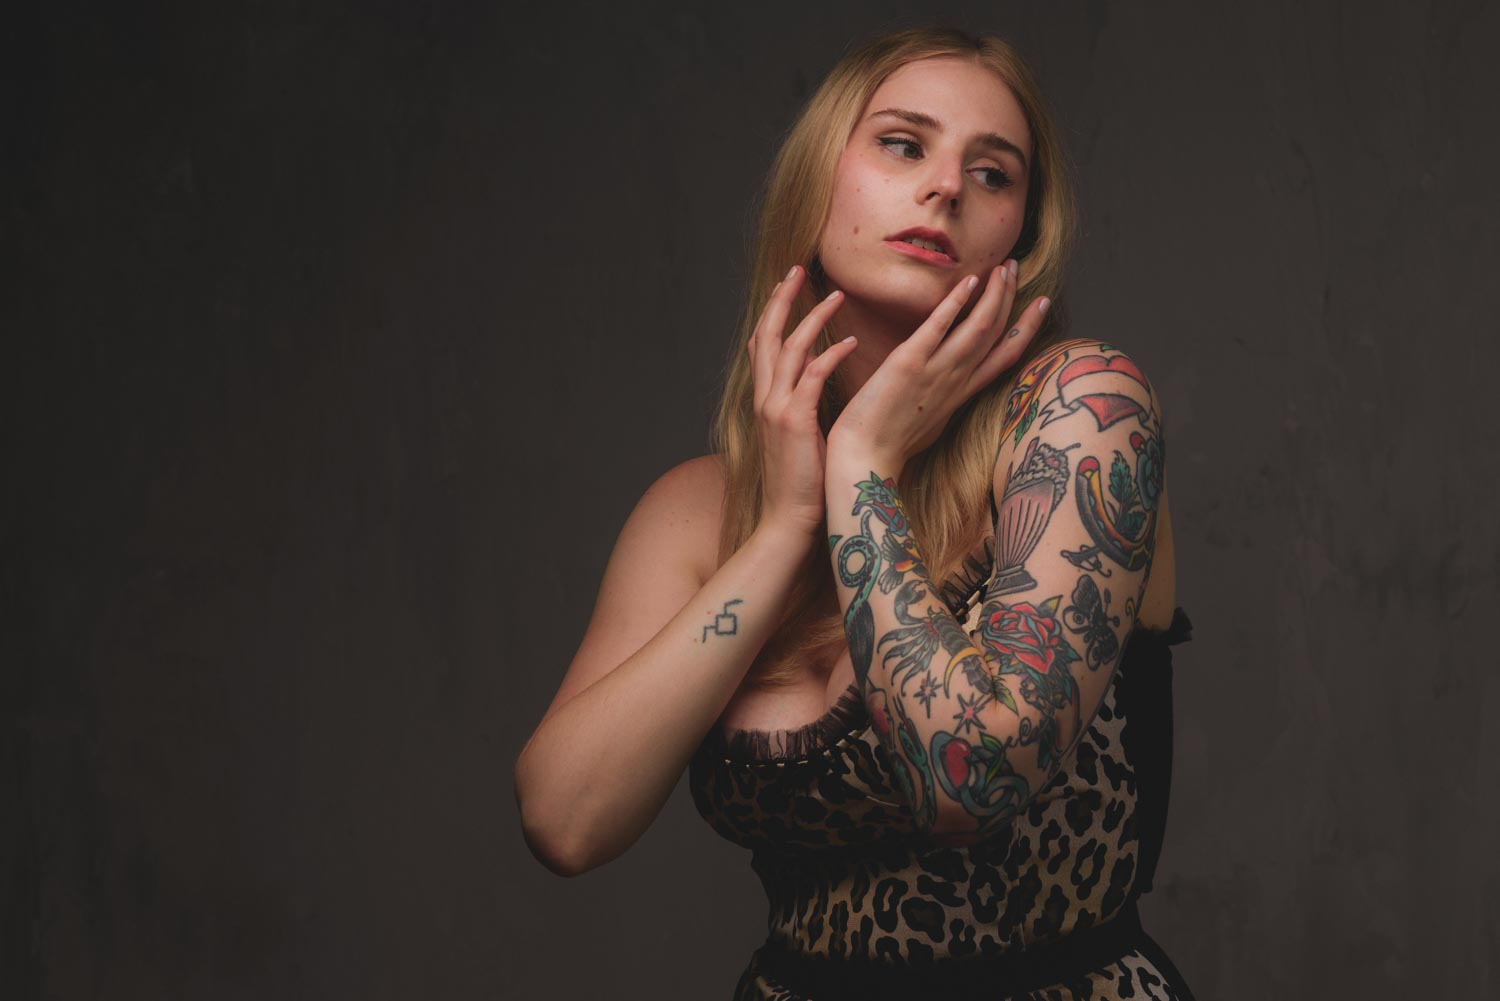 a portrait of Allison in front of a concrete textured wall, she is holding her hands to her face and looking off away from the camera and she is wearing a leopard print dress.